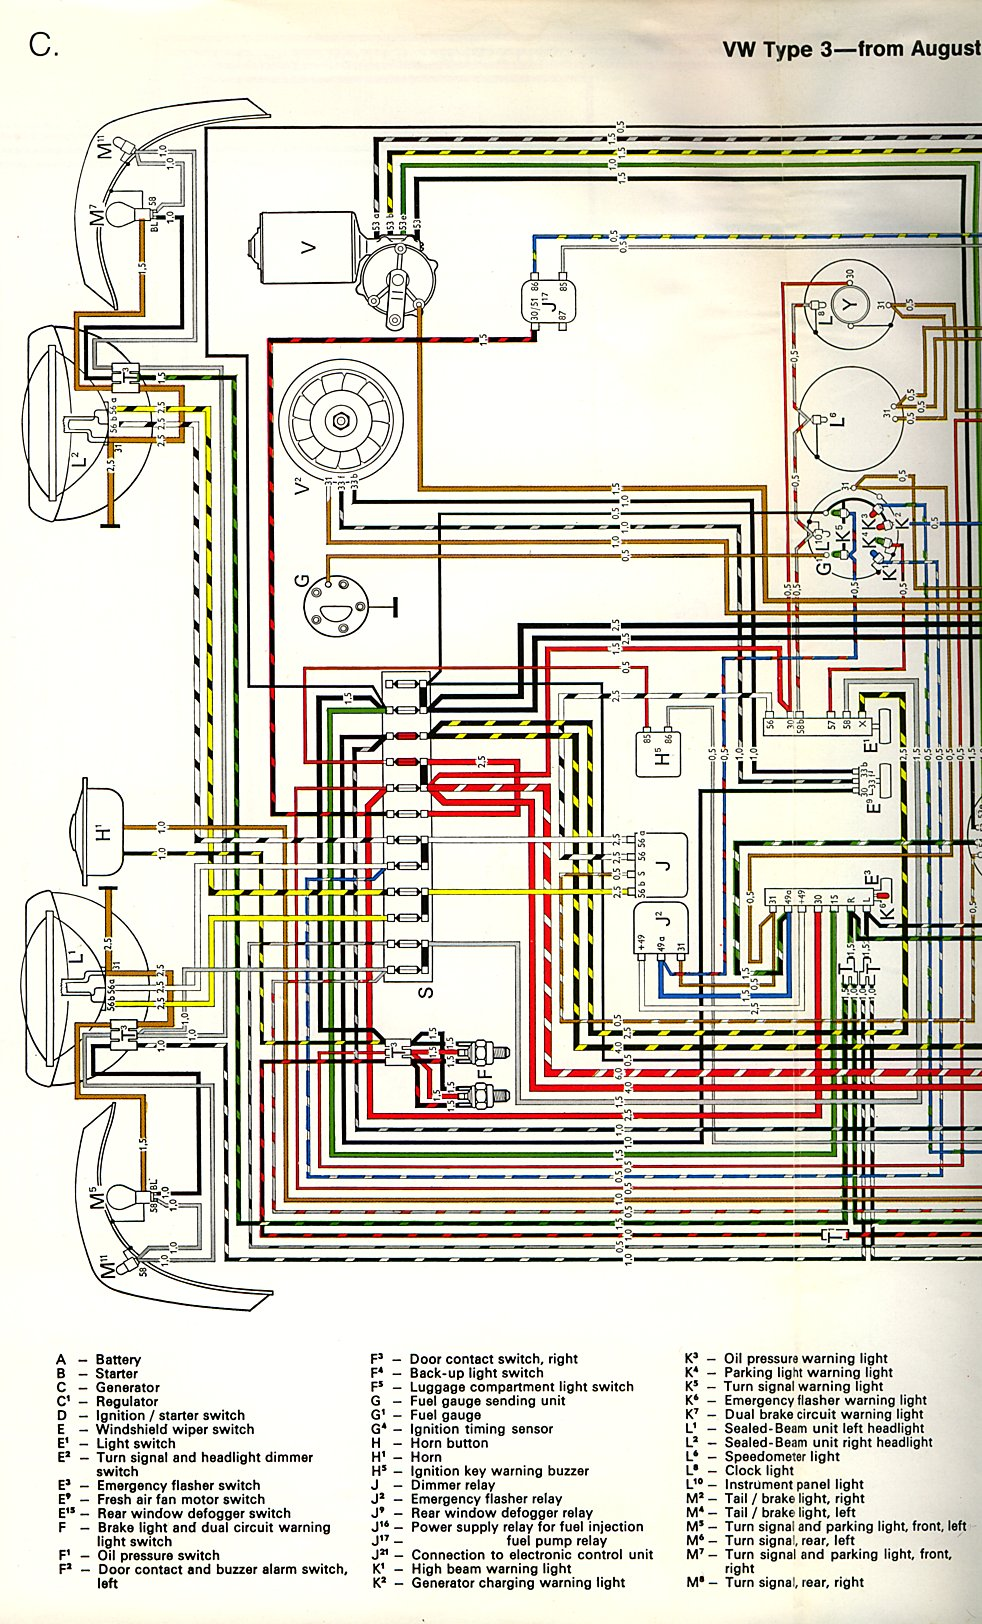 type3_72a thesamba com type 3 wiring diagrams 1970 vw wiring diagram at mifinder.co